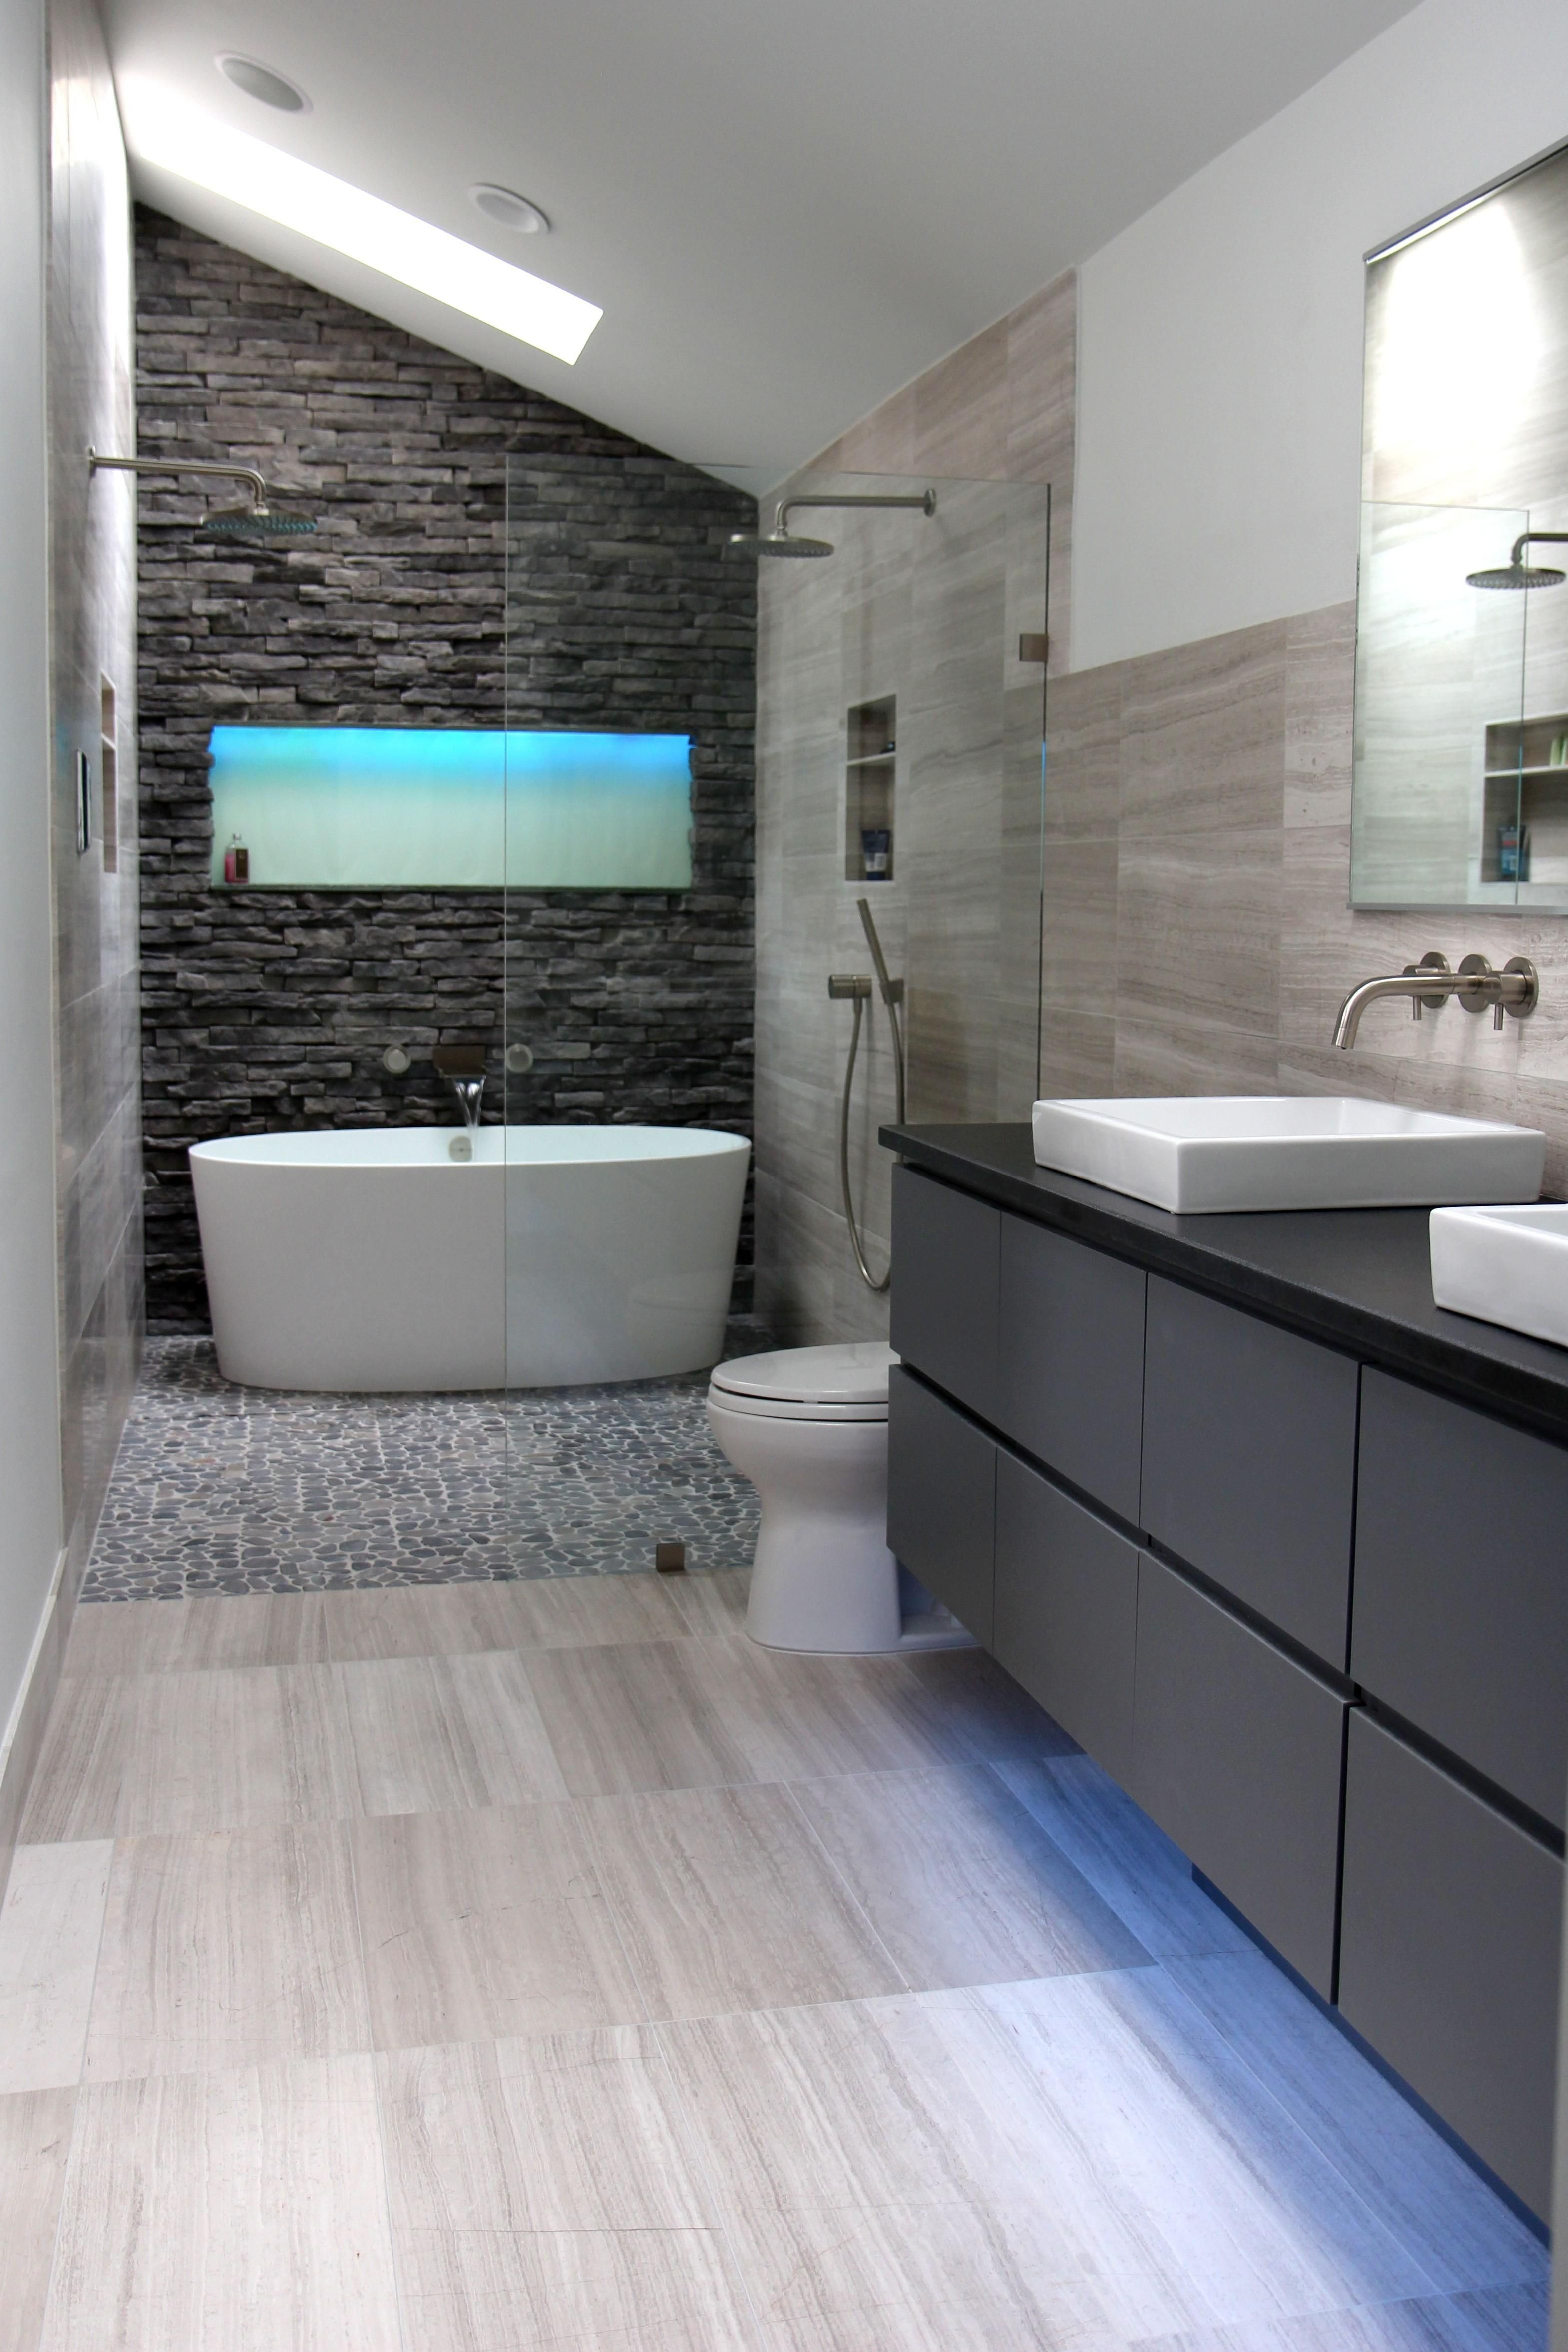 51 small master bathroom remodeling ideas cool in 2020 on amazing small bathroom designs and ideas id=73452